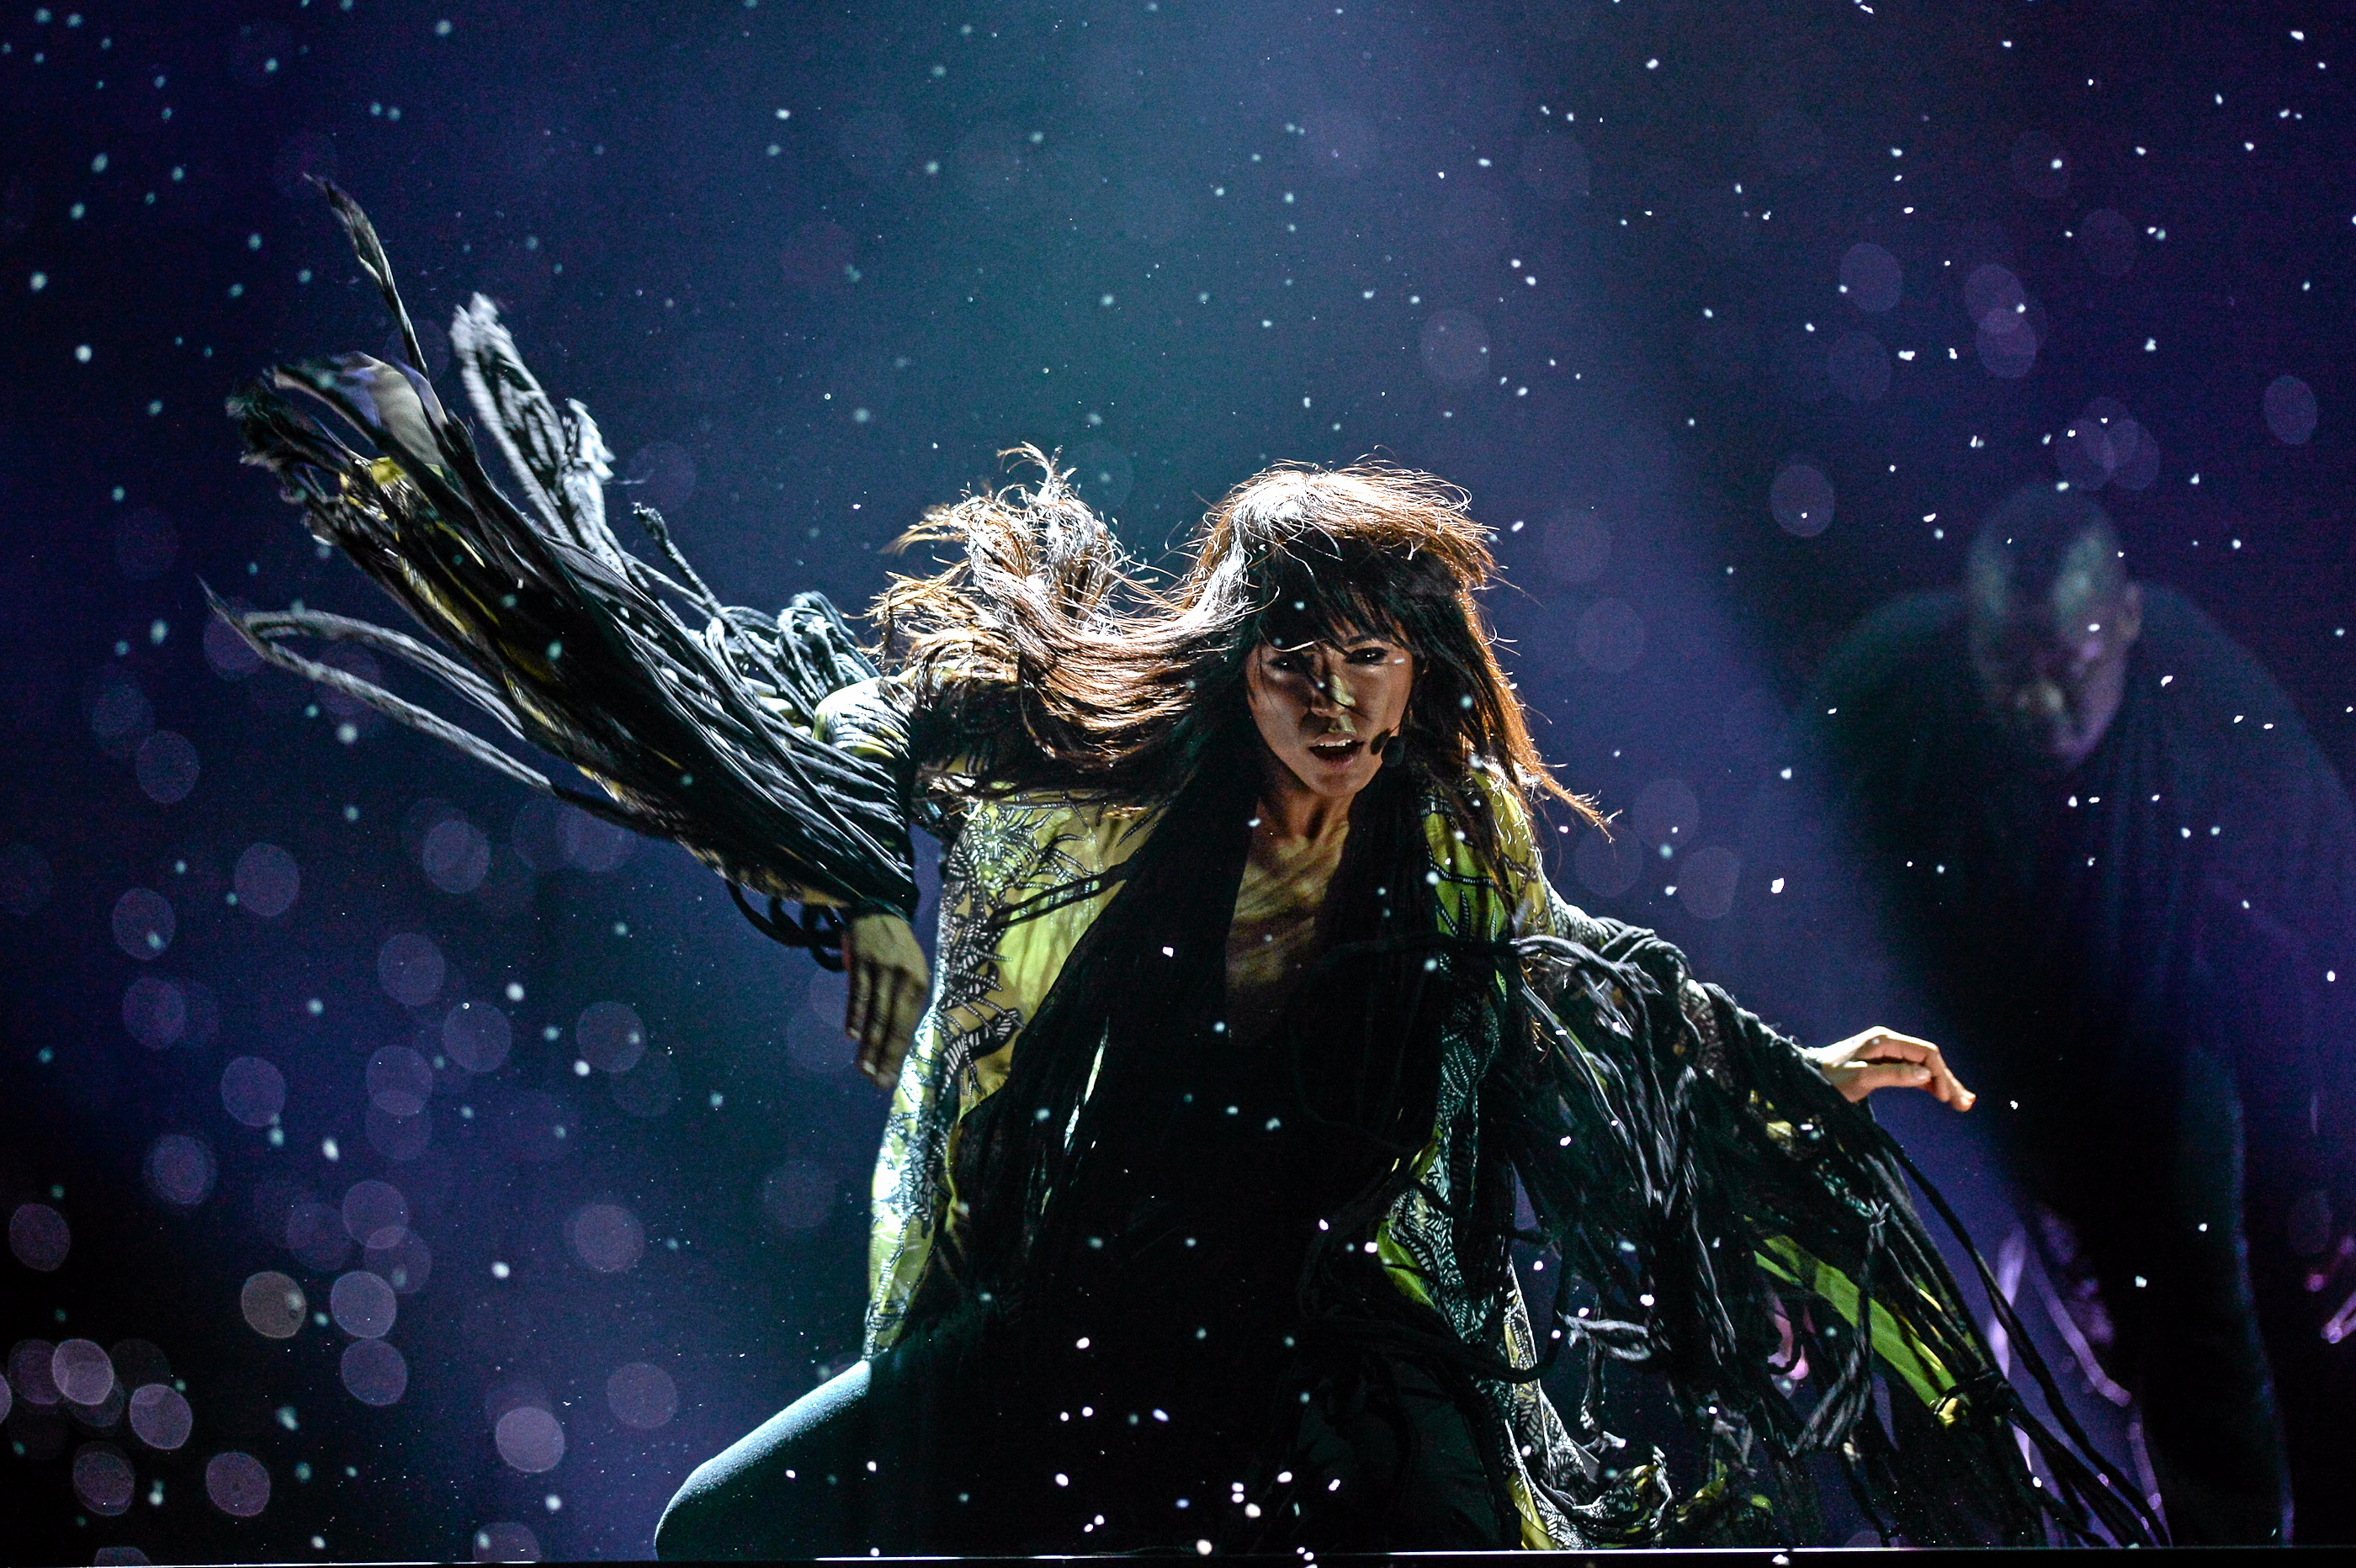 Loreen, winner 2012 Eurovision Song Contest